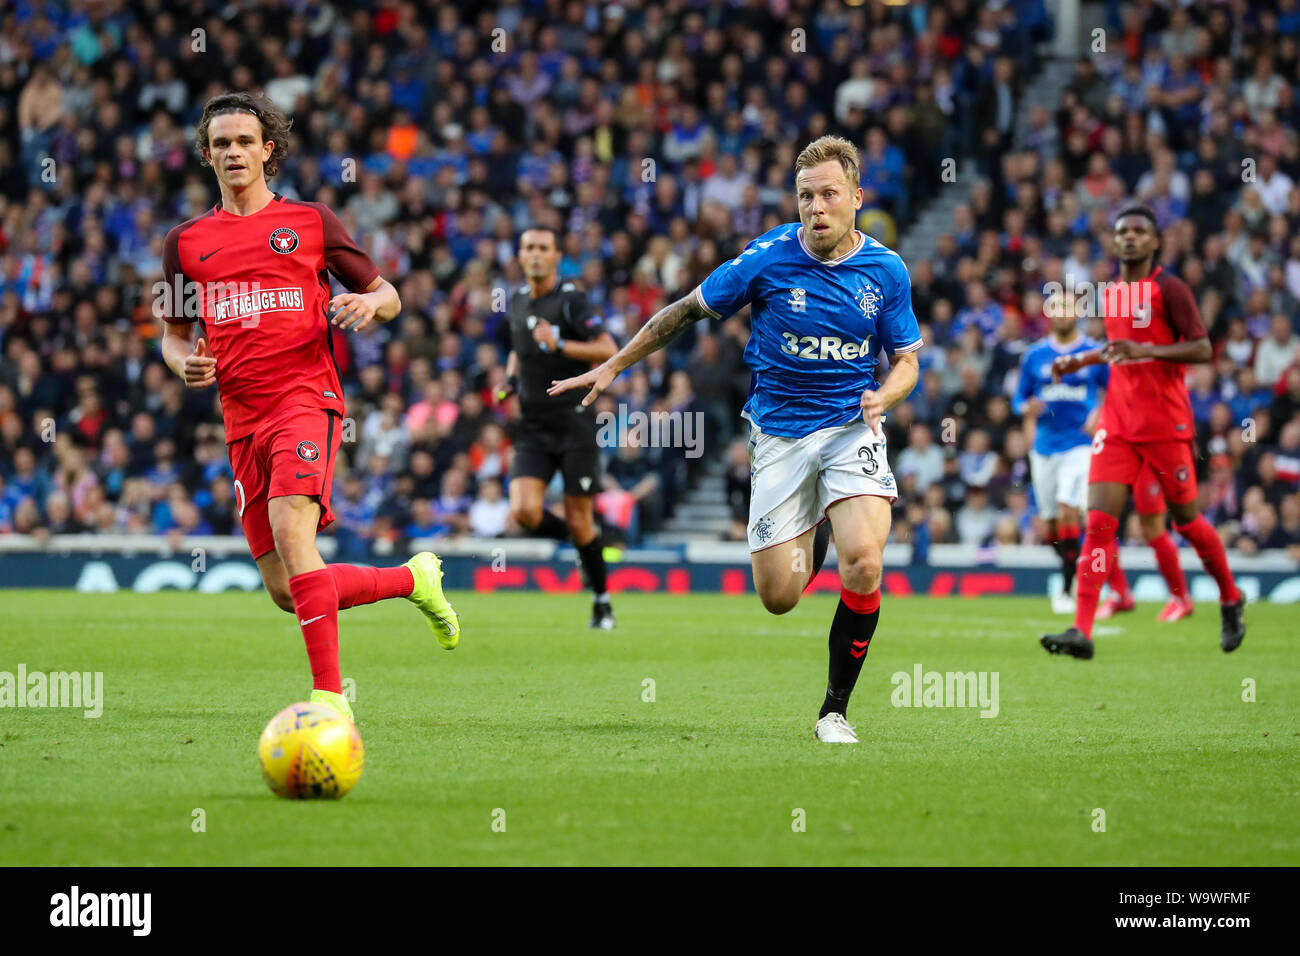 Glasgow, UK. 15th Aug, 2019. The third qualifying round of the UEFA EUROPA LEAGUE 2019/20 between Glasgow Rangers and FC Midtjylland was played at Ibrox stadium, Glasgow the home ground of Rangers who go into this round with a 4 -2 lead. Rangers won 3 -1 to go through to the next round. Credit: Findlay/Alamy Live News Stock Photo